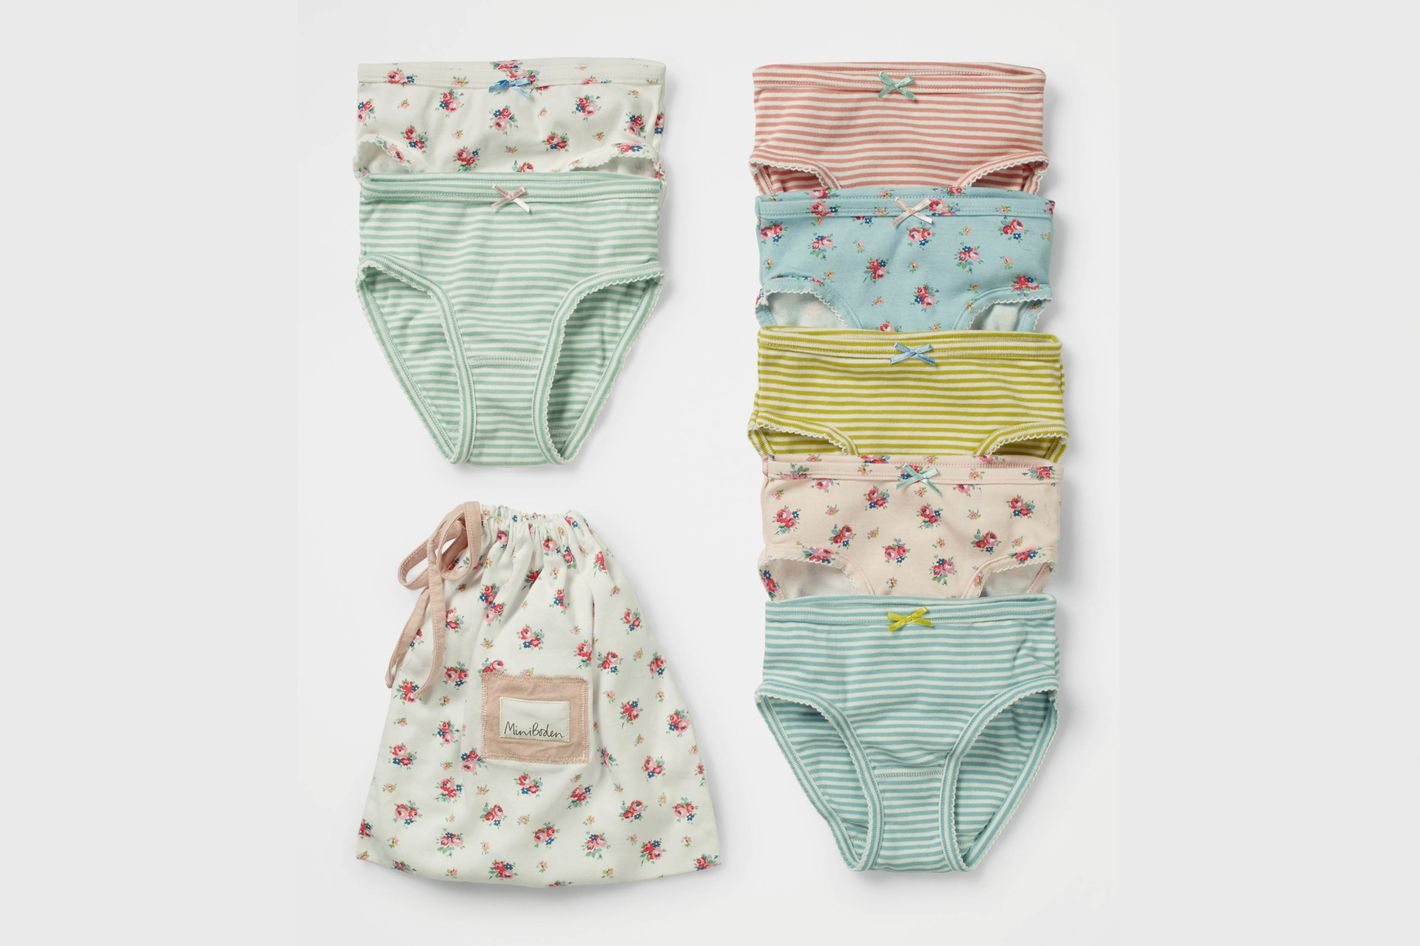 Mini Boden 7-Pack Underwear